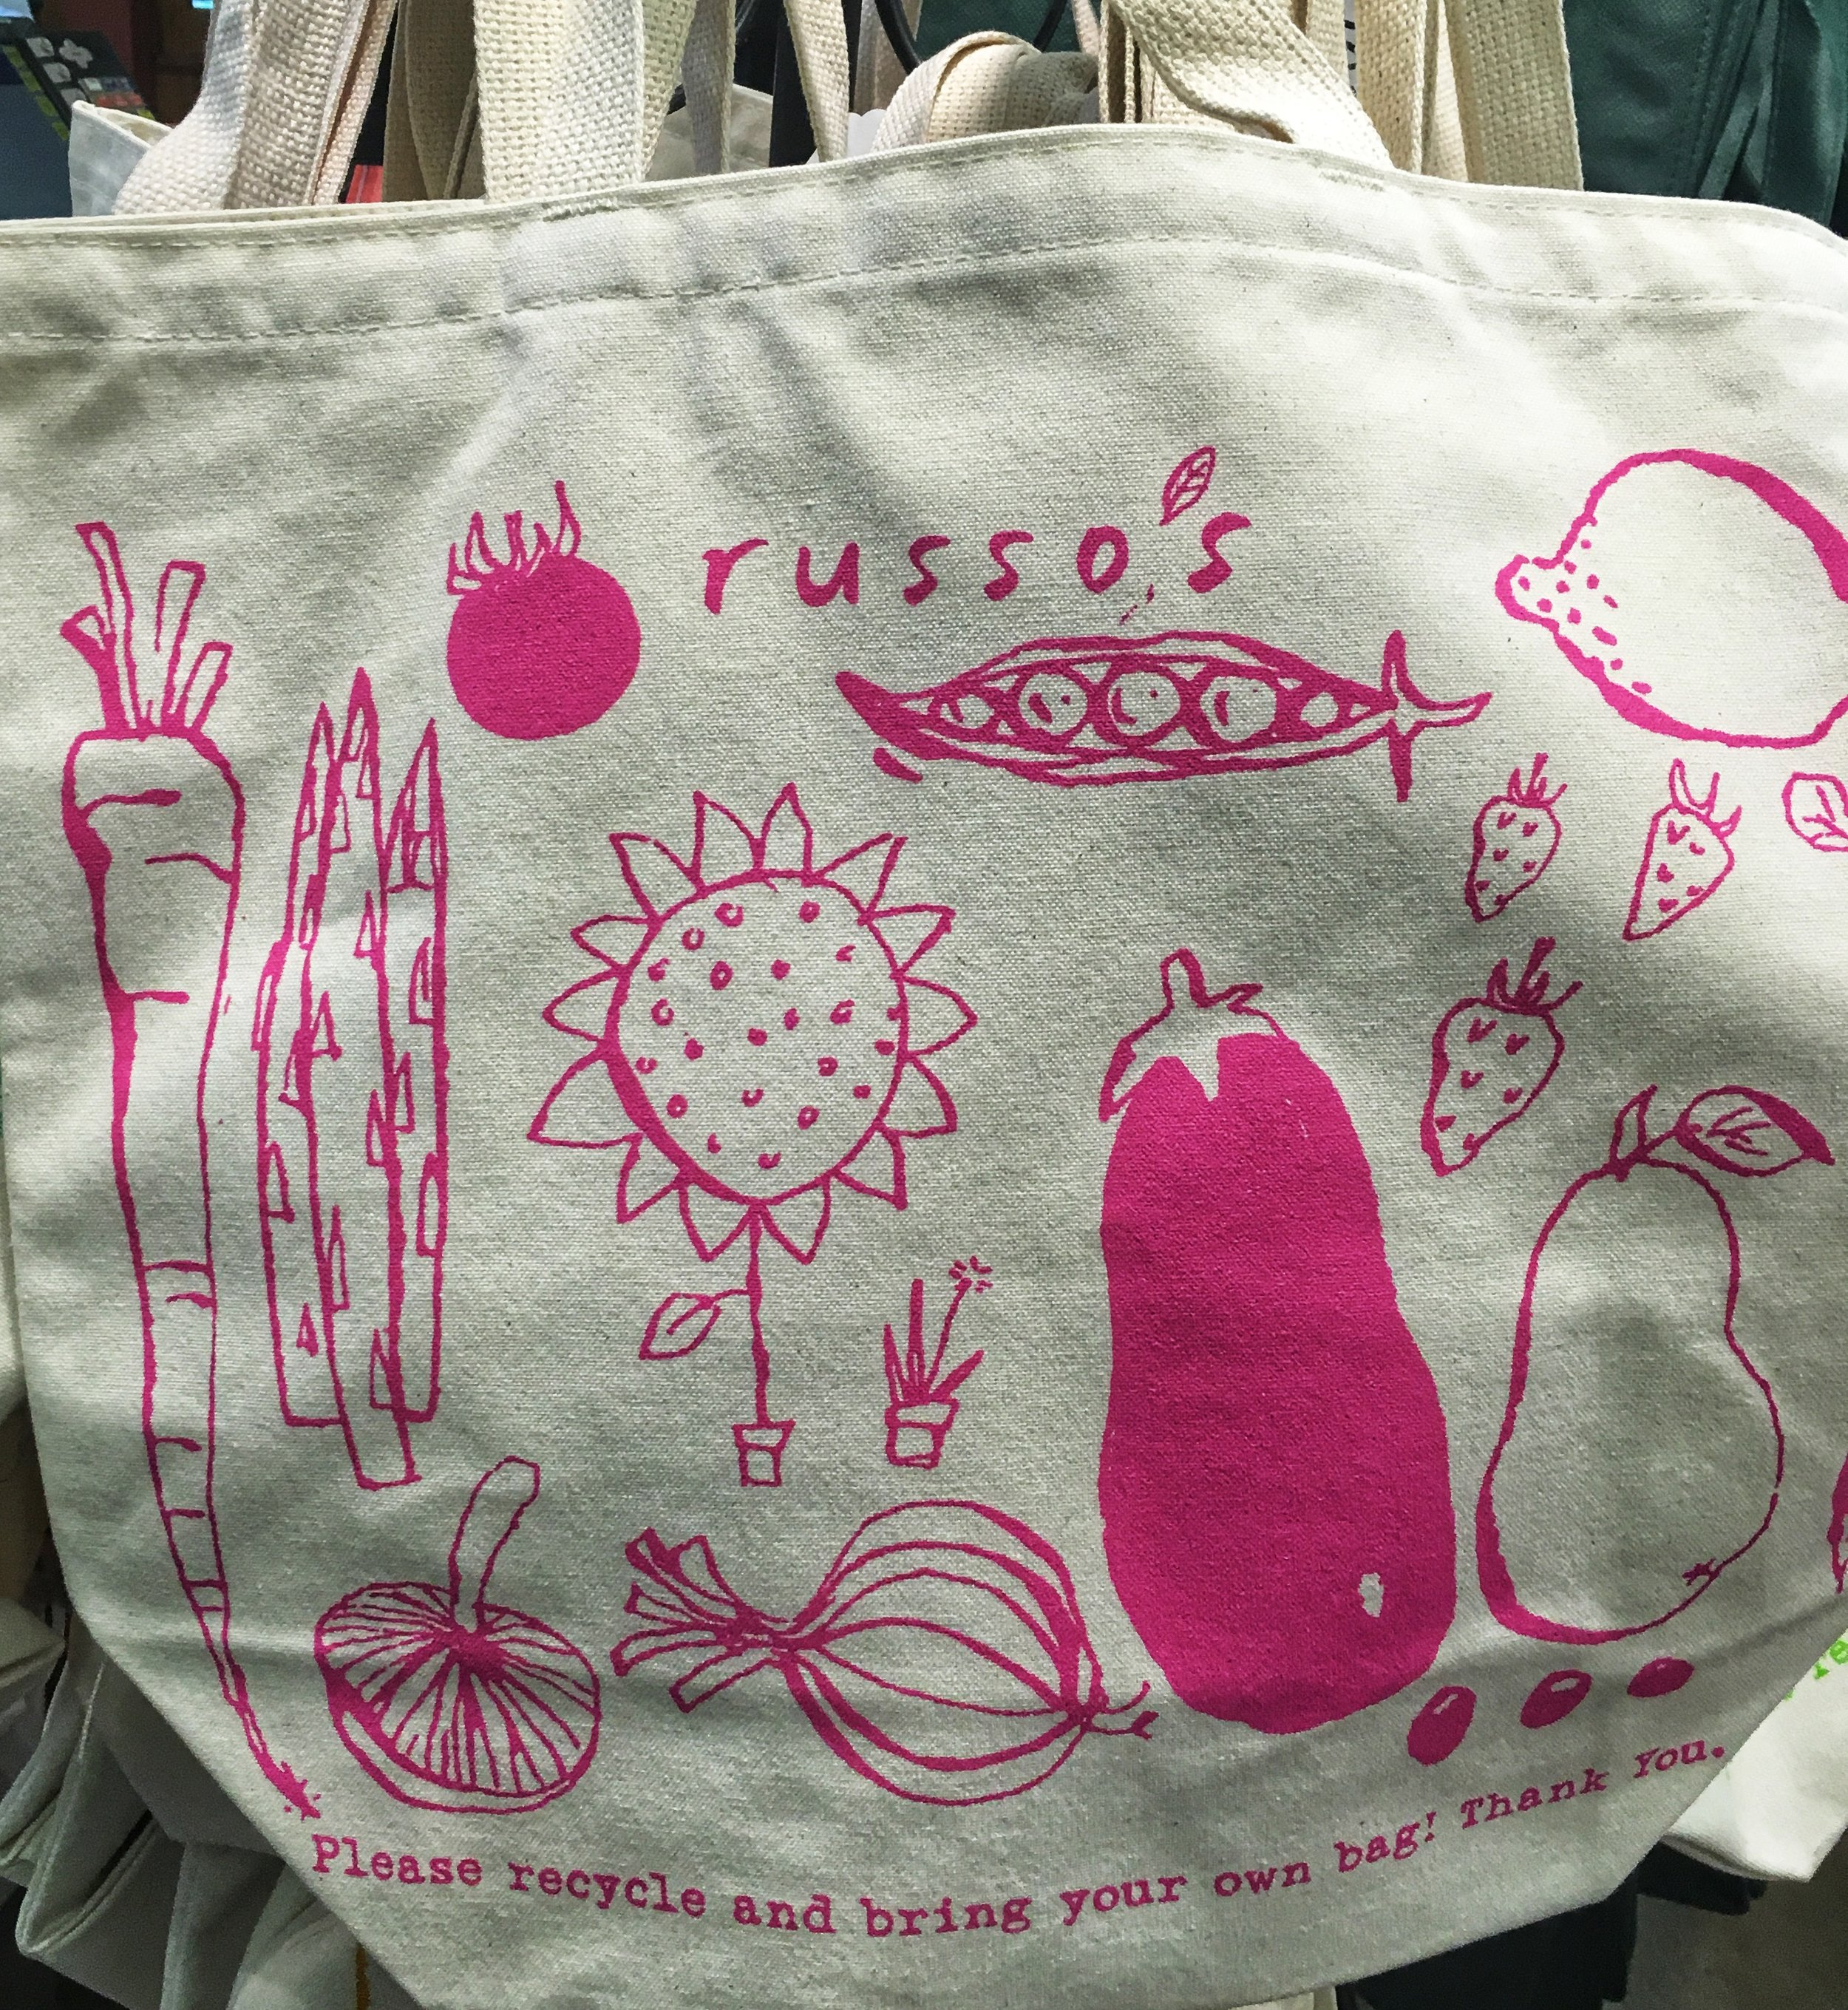 A very happy pink Russ'o's Tote Bag or Summer!